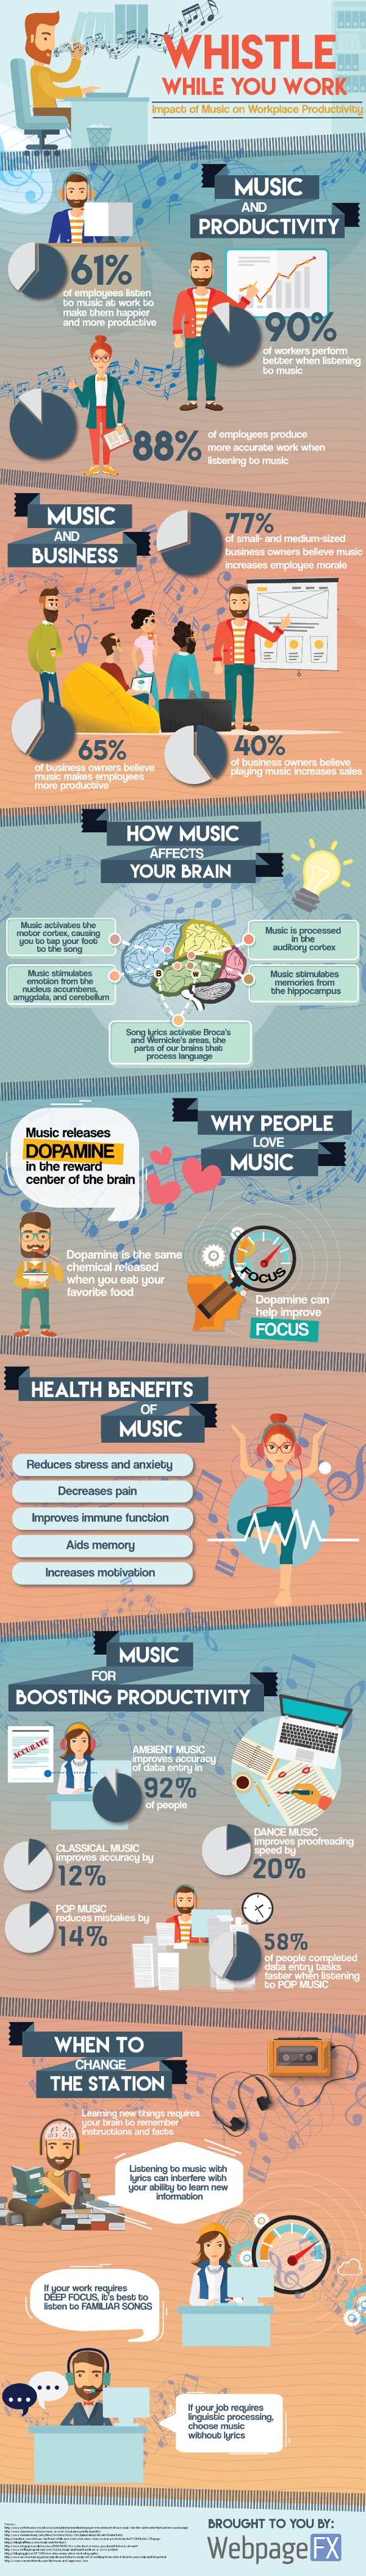 music and productivity infographic